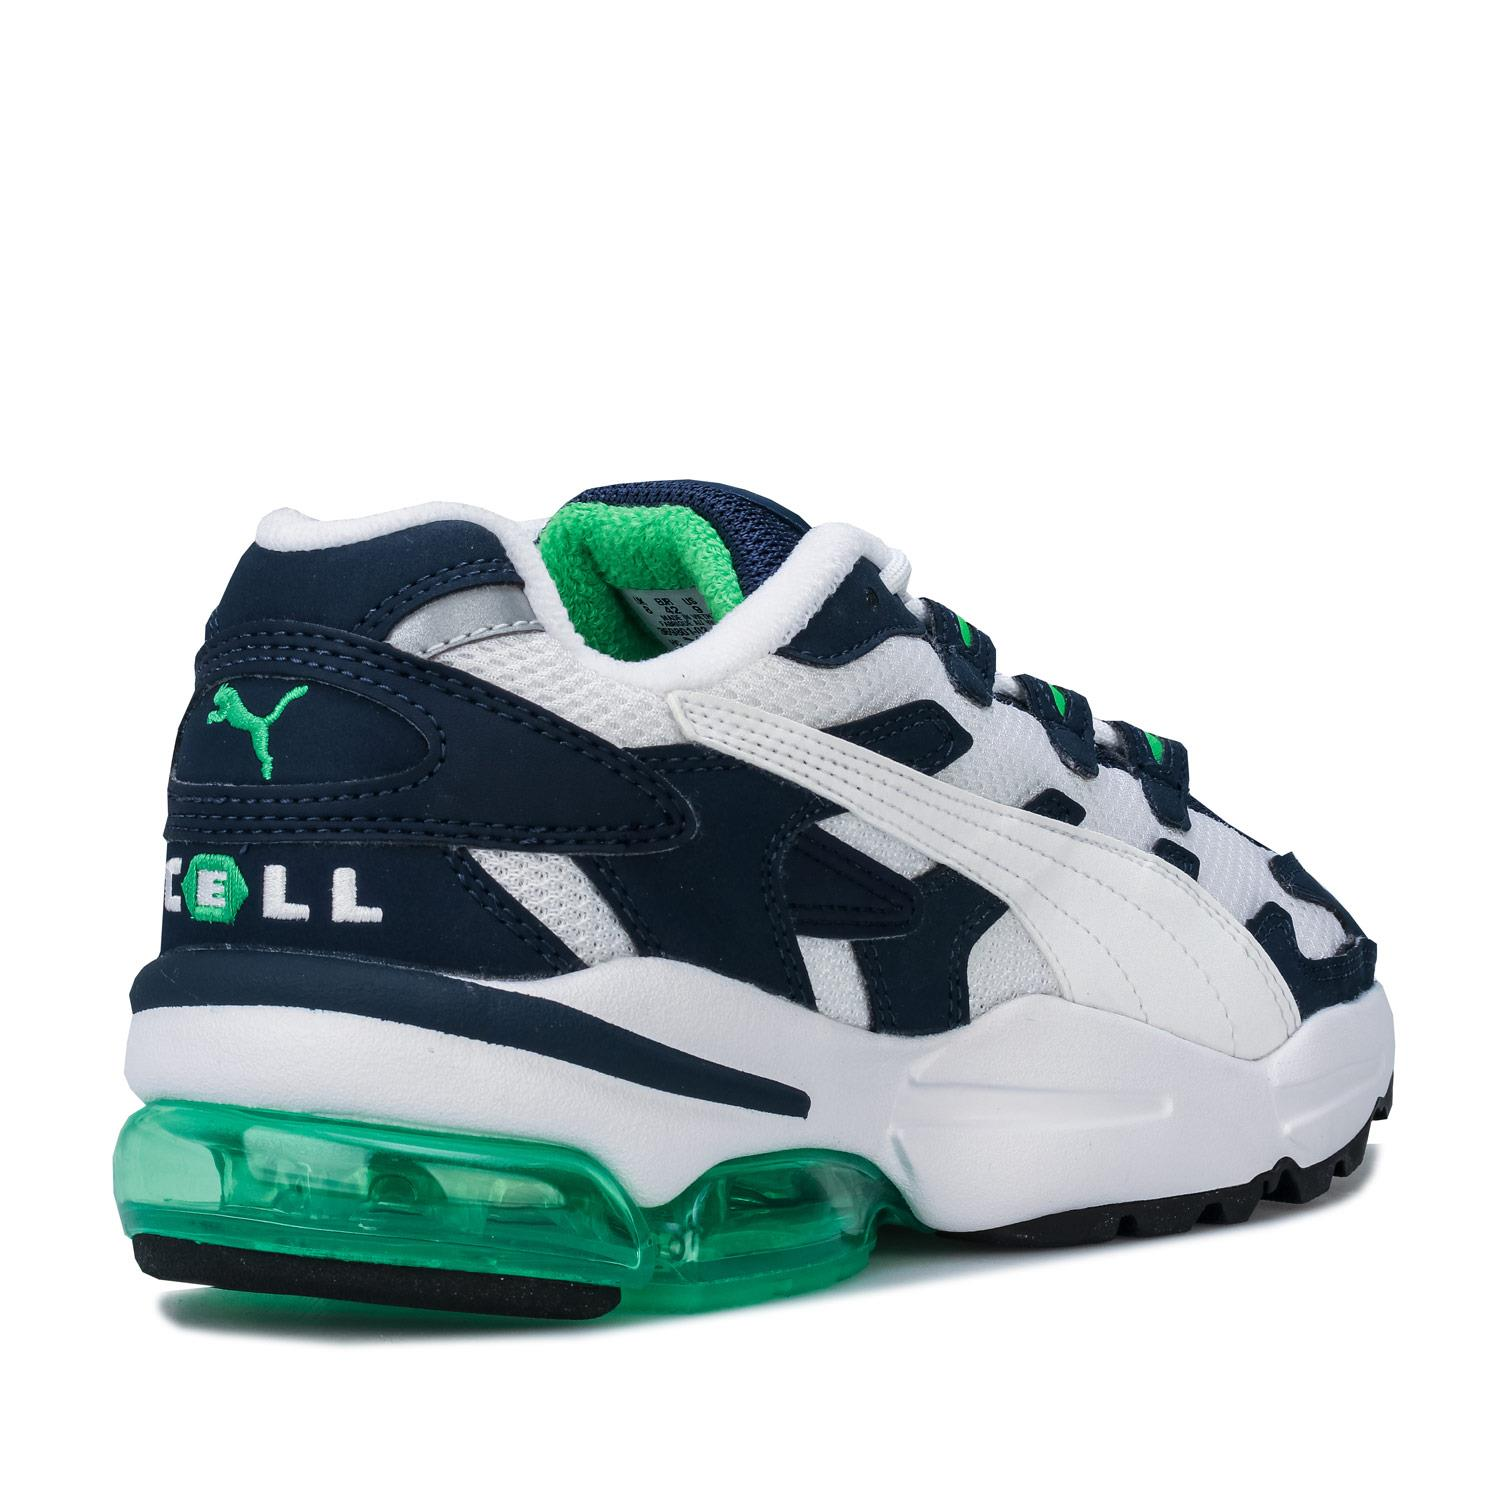 Mens-Puma-Cell-Alien-OG-Trainers-in-Blue-Green-Black-Red-Blue-and-Yellow thumbnail 16